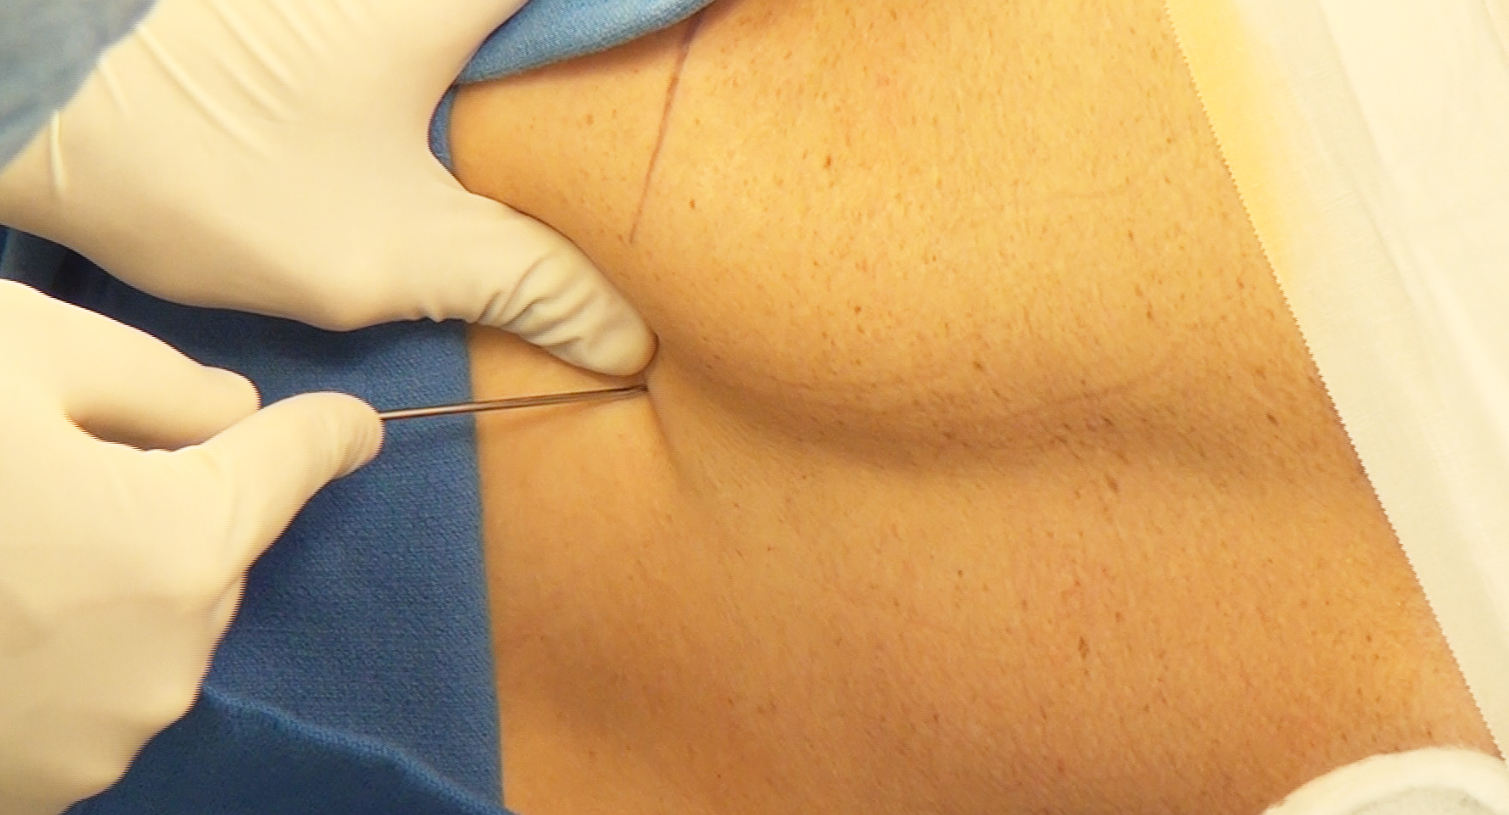 """Figure 3: The Tuohy needle is inserted at the midline and through the interspinous space with the beveled side facing cephalad. I often advance the needle in a slightly cephalad direction and follow the contours of the adjacent spinous process. If I come in contact with the lamina, I """"walk"""" the needle tip along this bone with fine adjustments until the needle """"falls into"""" the interlaminar space. Alternatively, the paraspinal technique may be used to angle the needle from lateral to medial to reach the sac."""